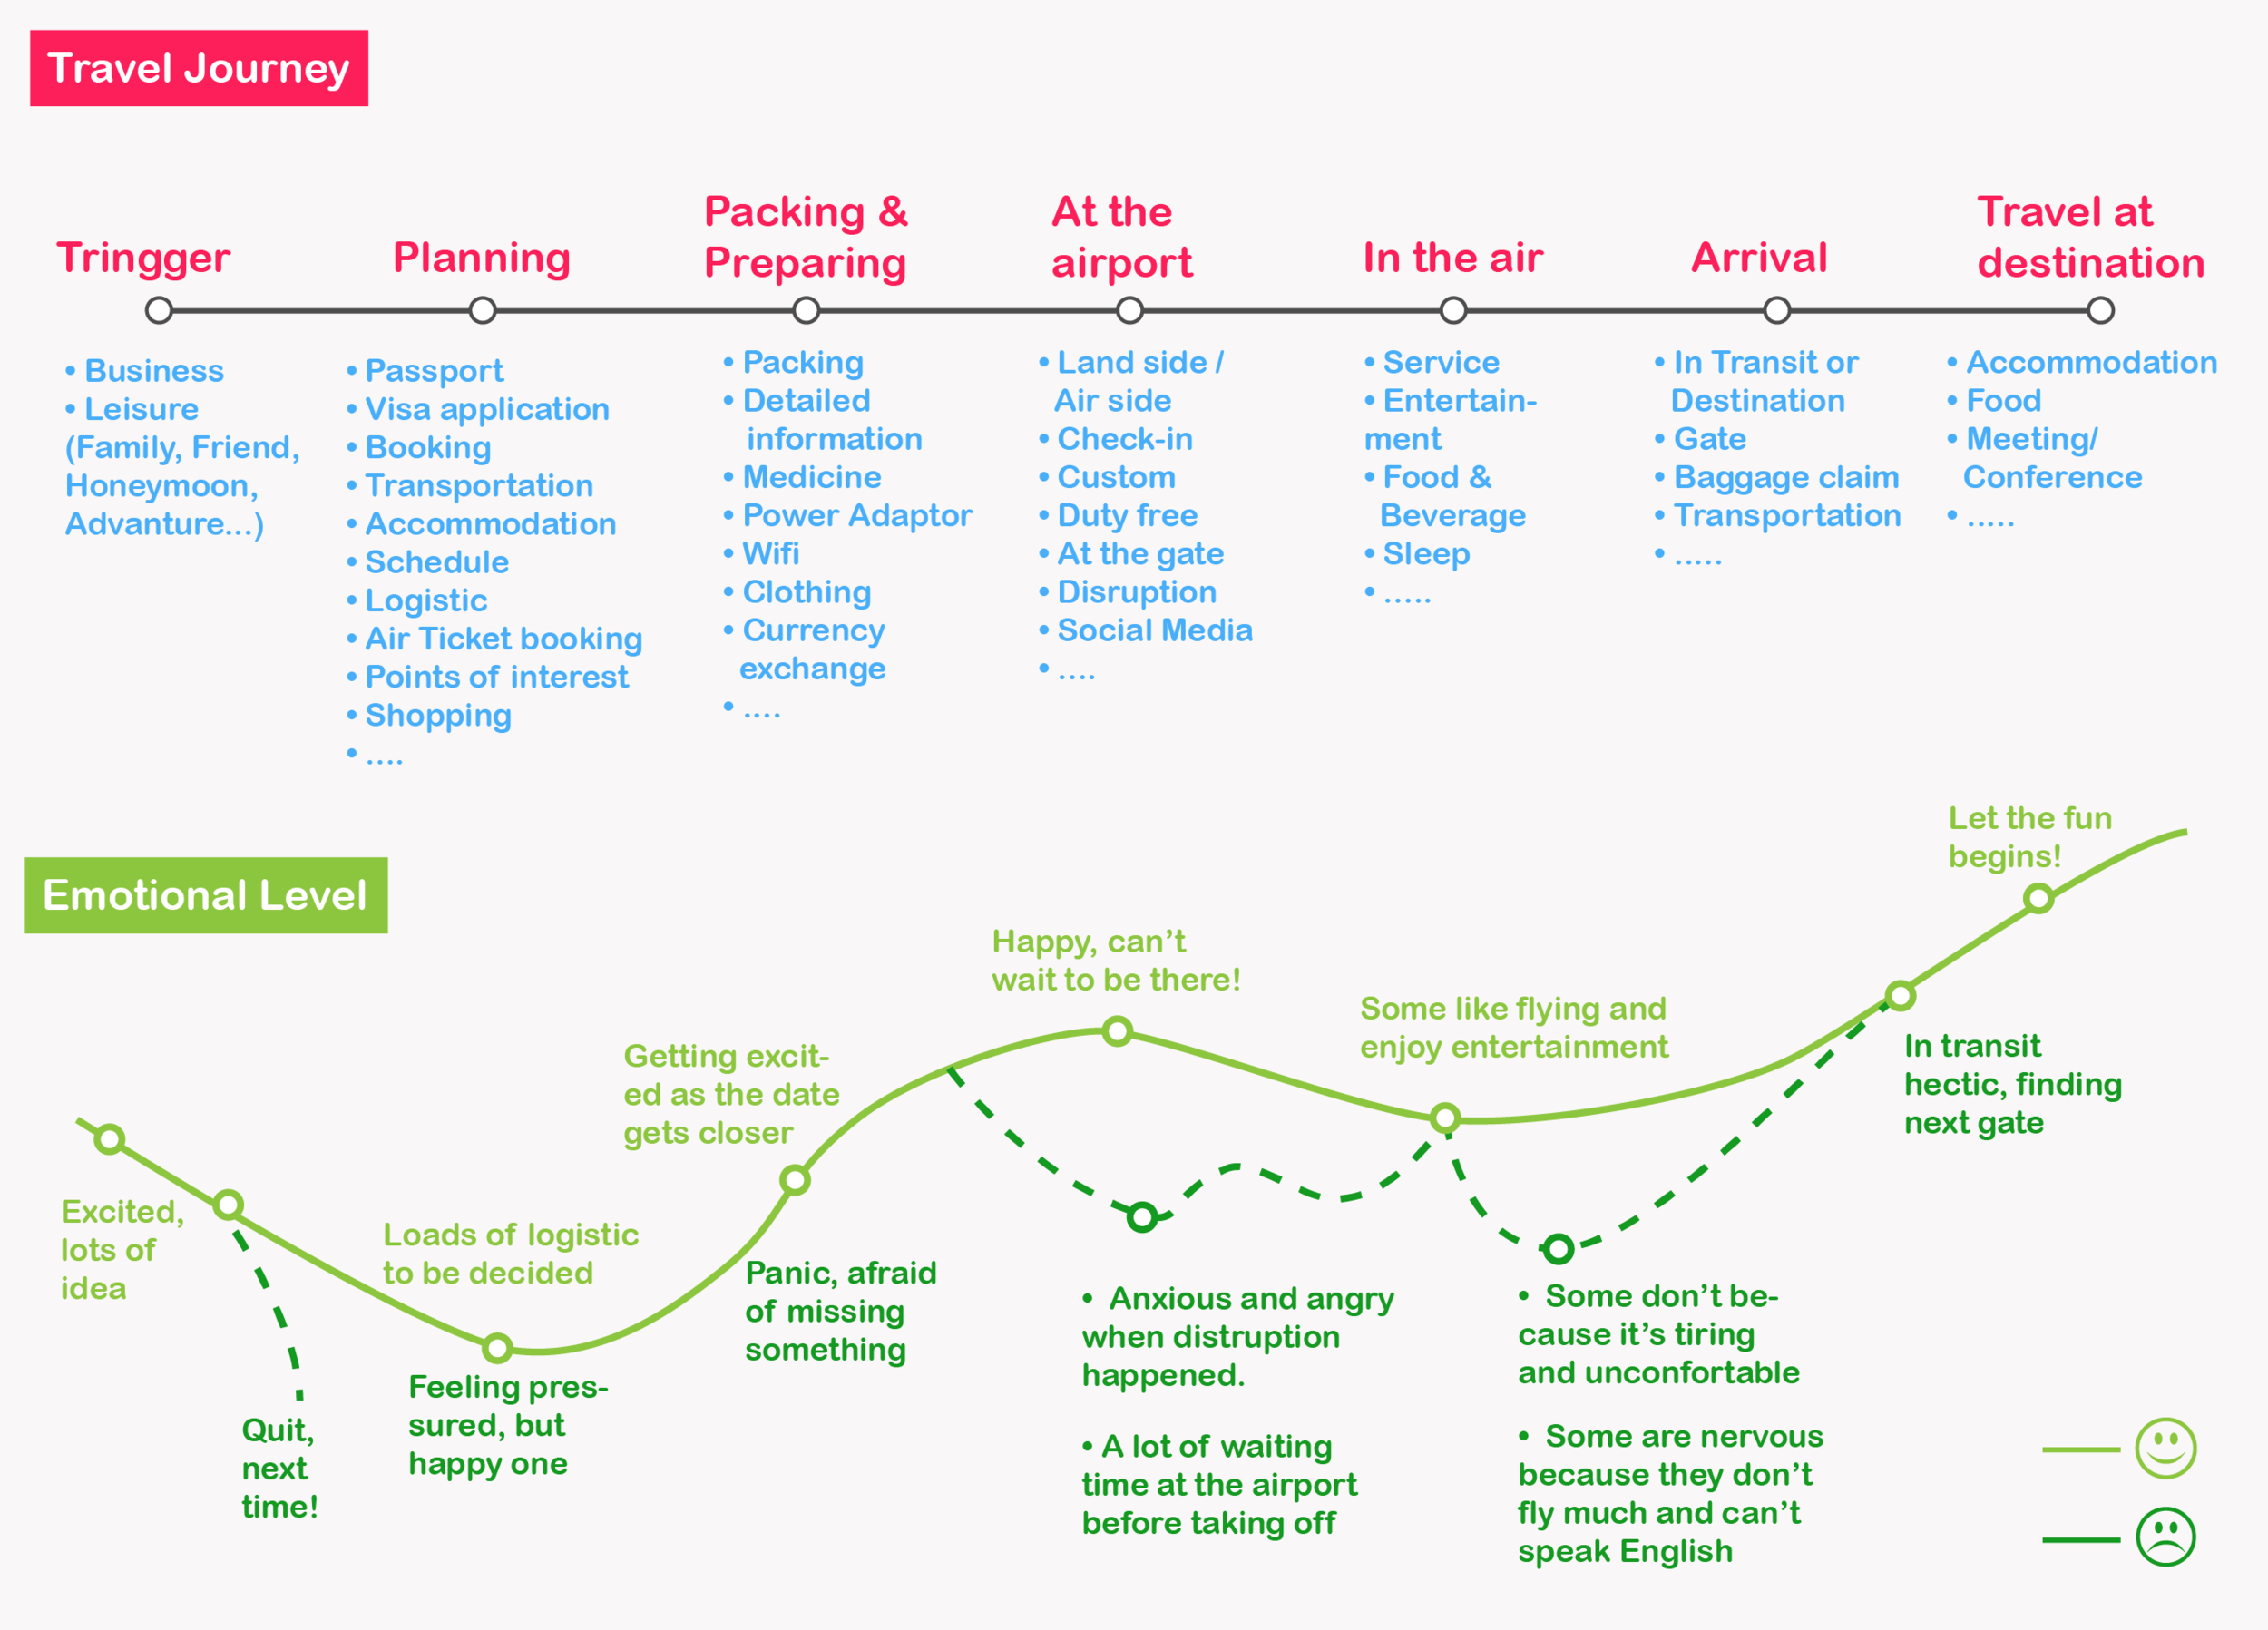 Customer journey and how emotional level fluctuate along the journey, here we can figure out a lot of opportunities to work on, on order to enhance brand experience